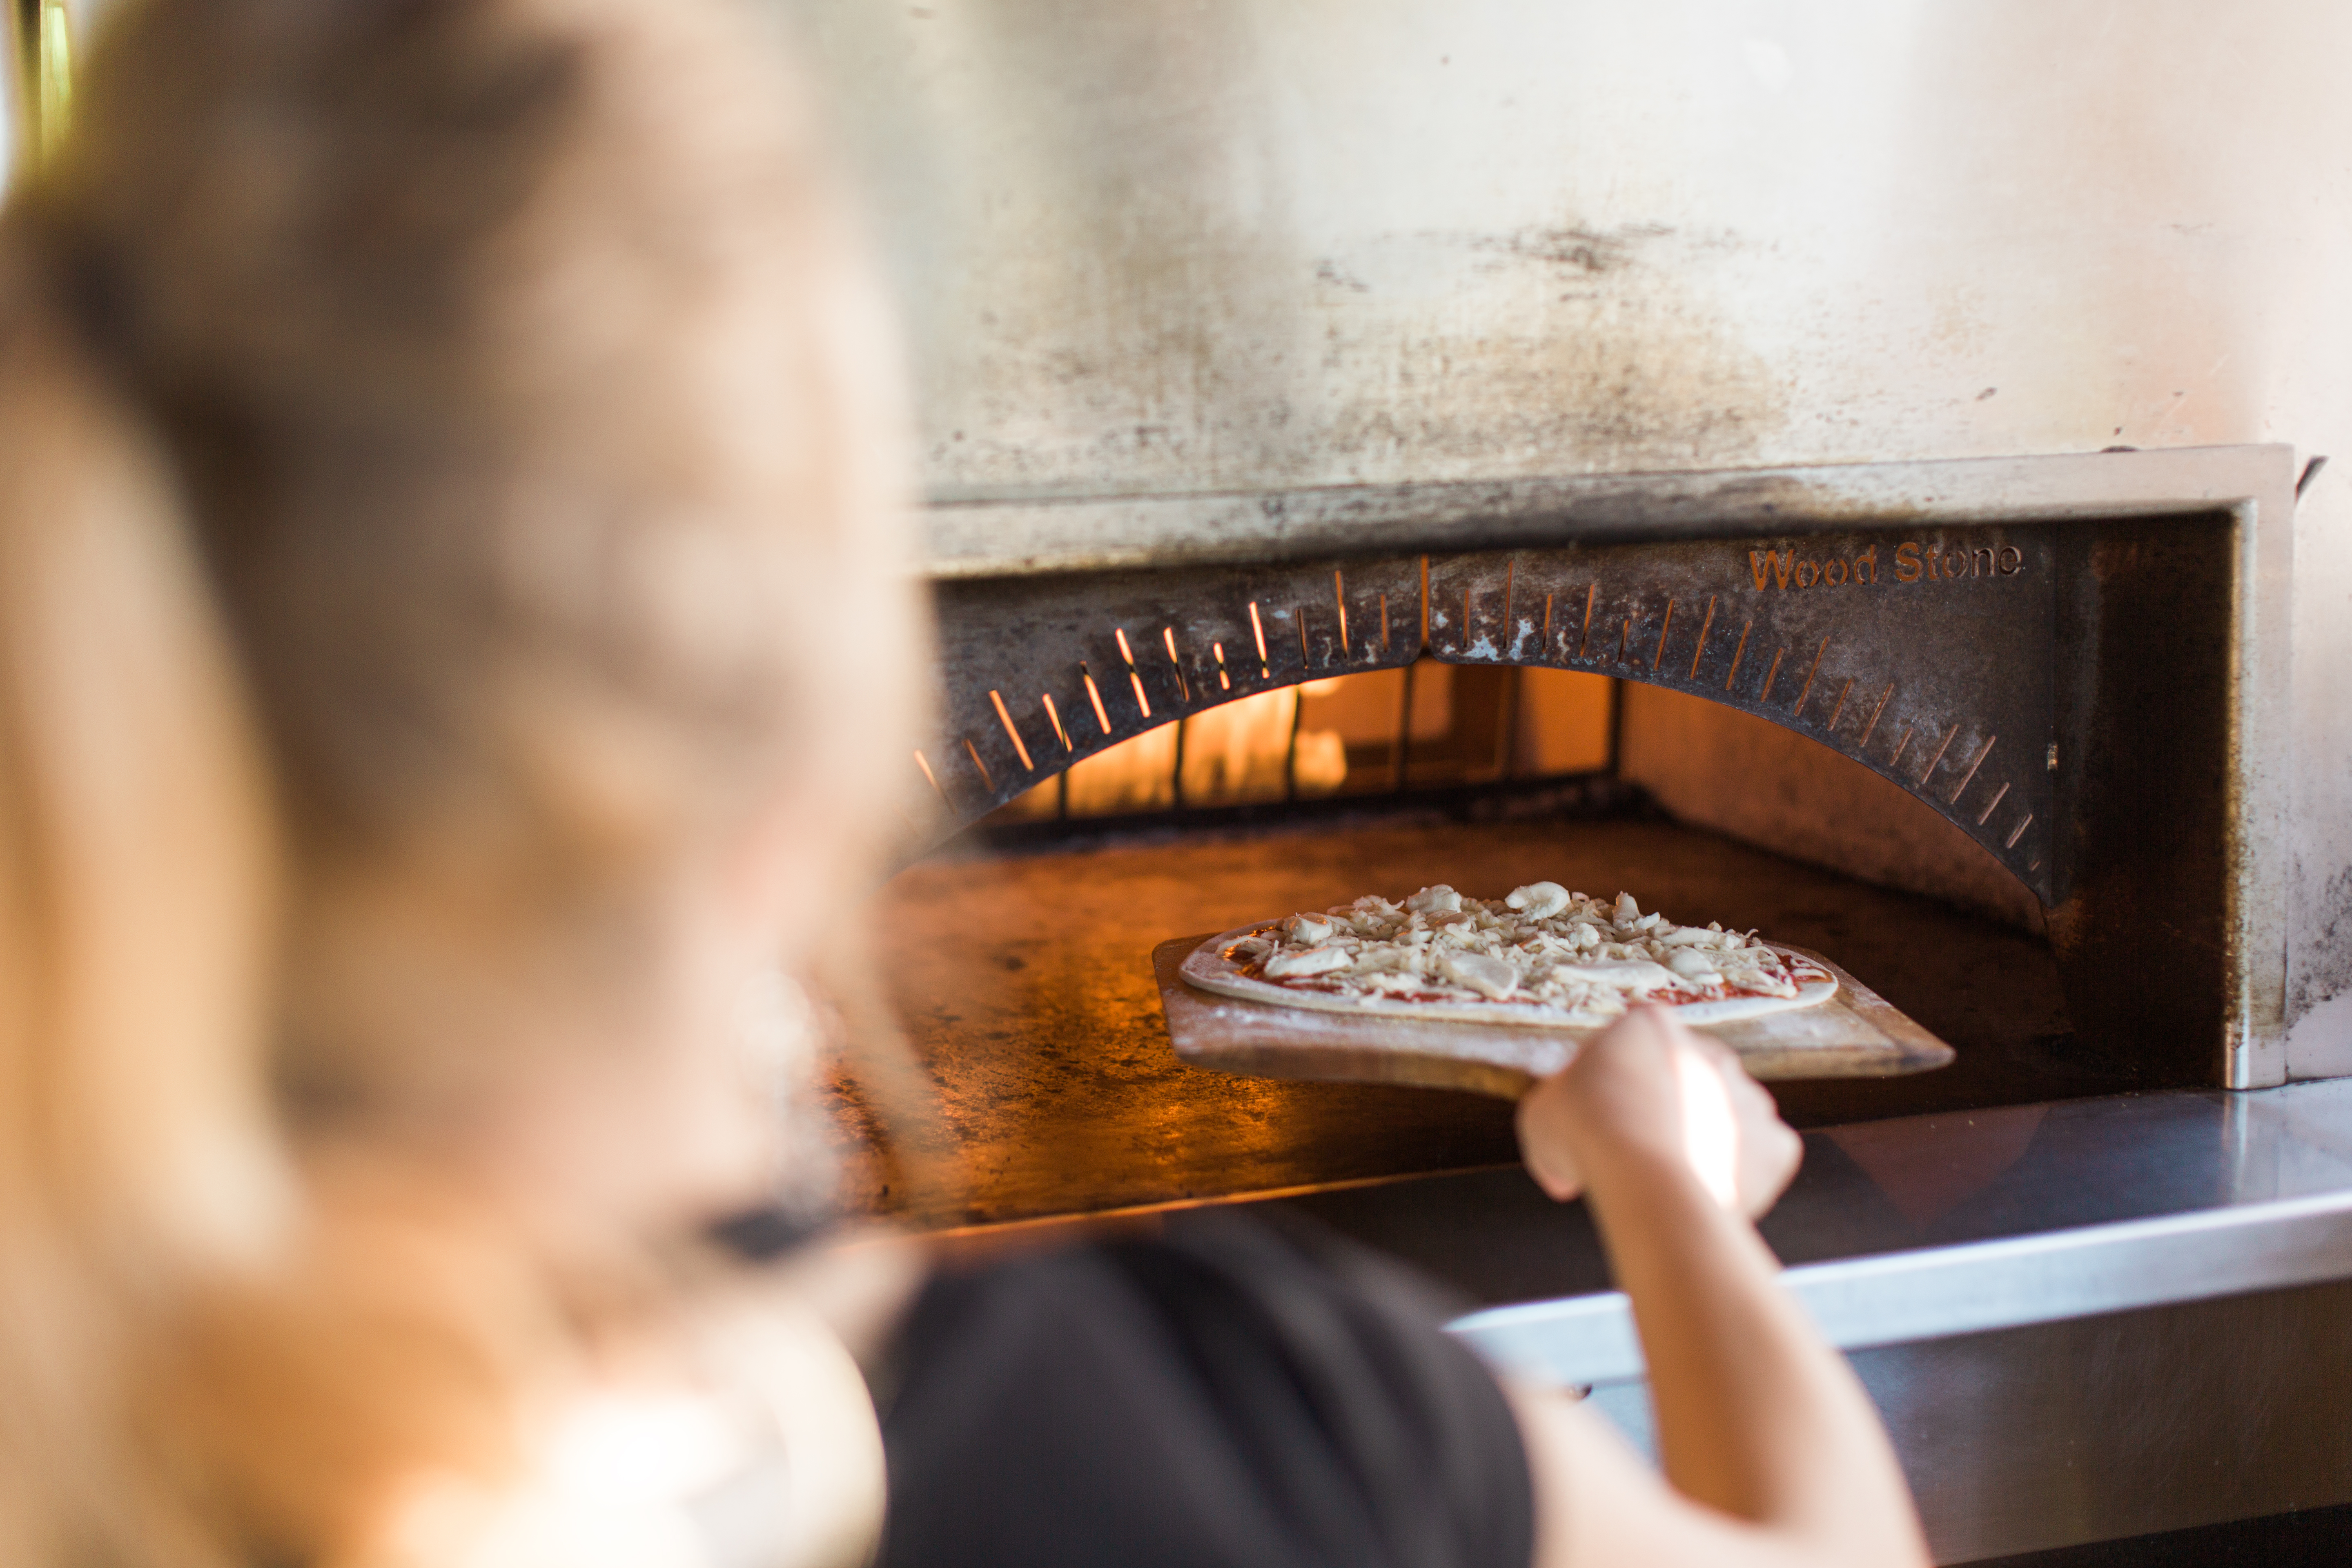 Wood fire pizza oven at CHAOS Bistro